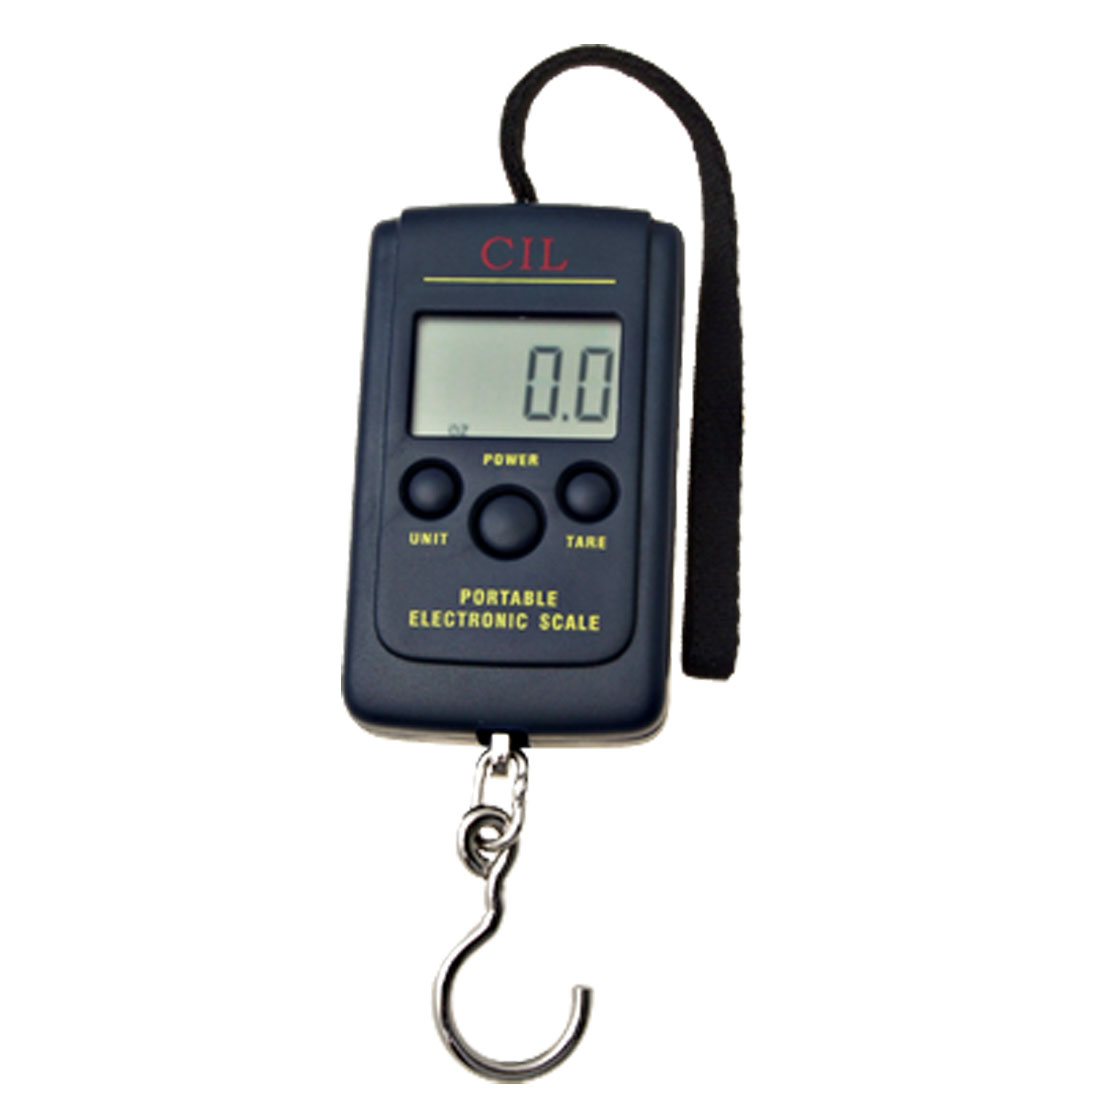 Portable Multi-purpose Electronic Digital Hang Hook Scale